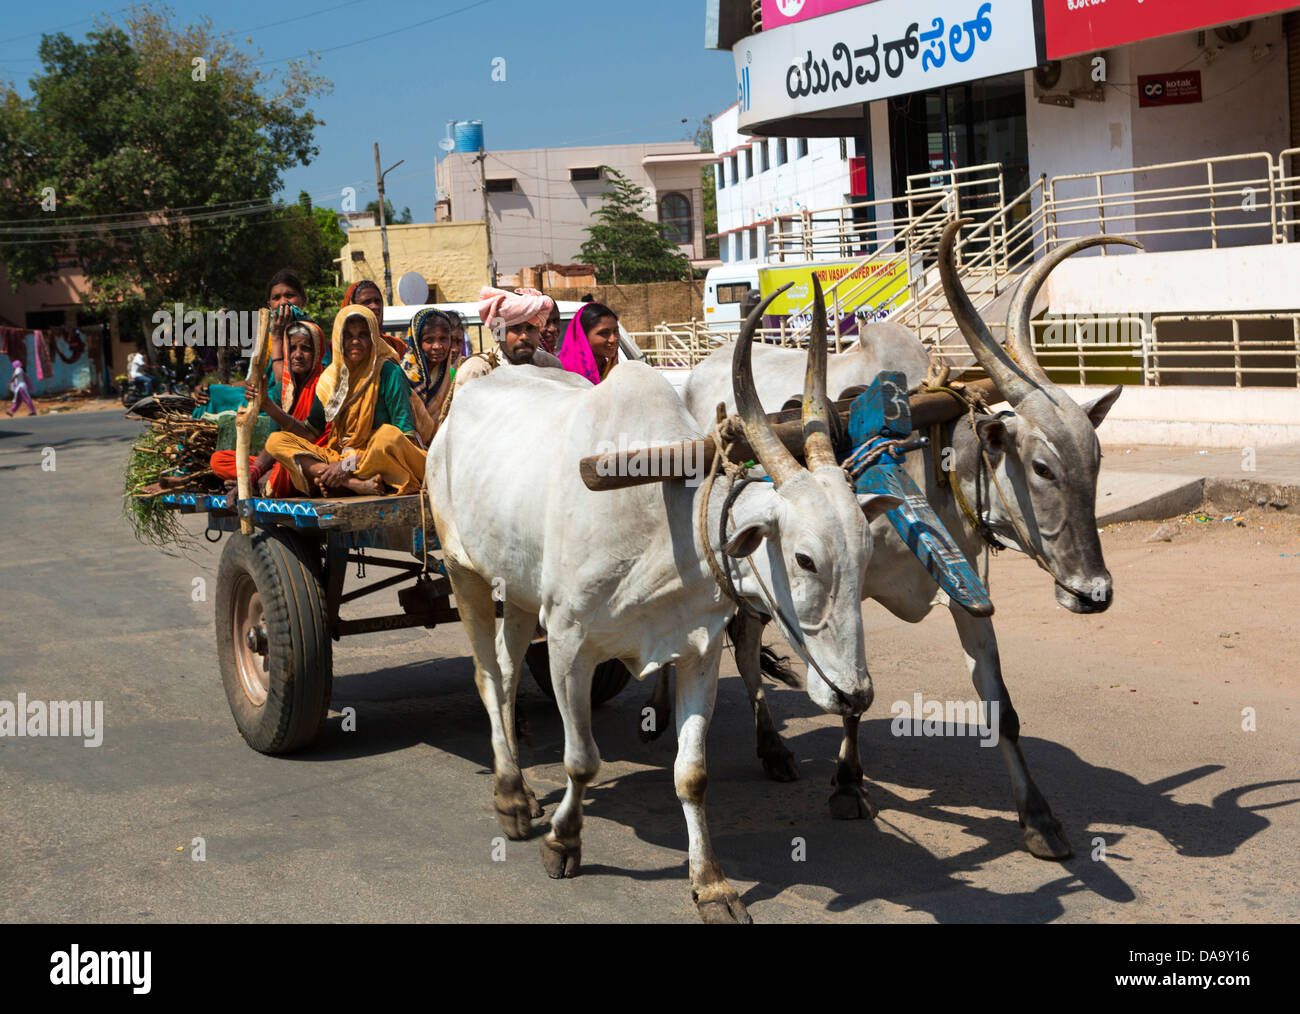 India, South India, Asia, bulls, cart, chariot, colourful, farmers, transport, primitive, ox, - Stock Image